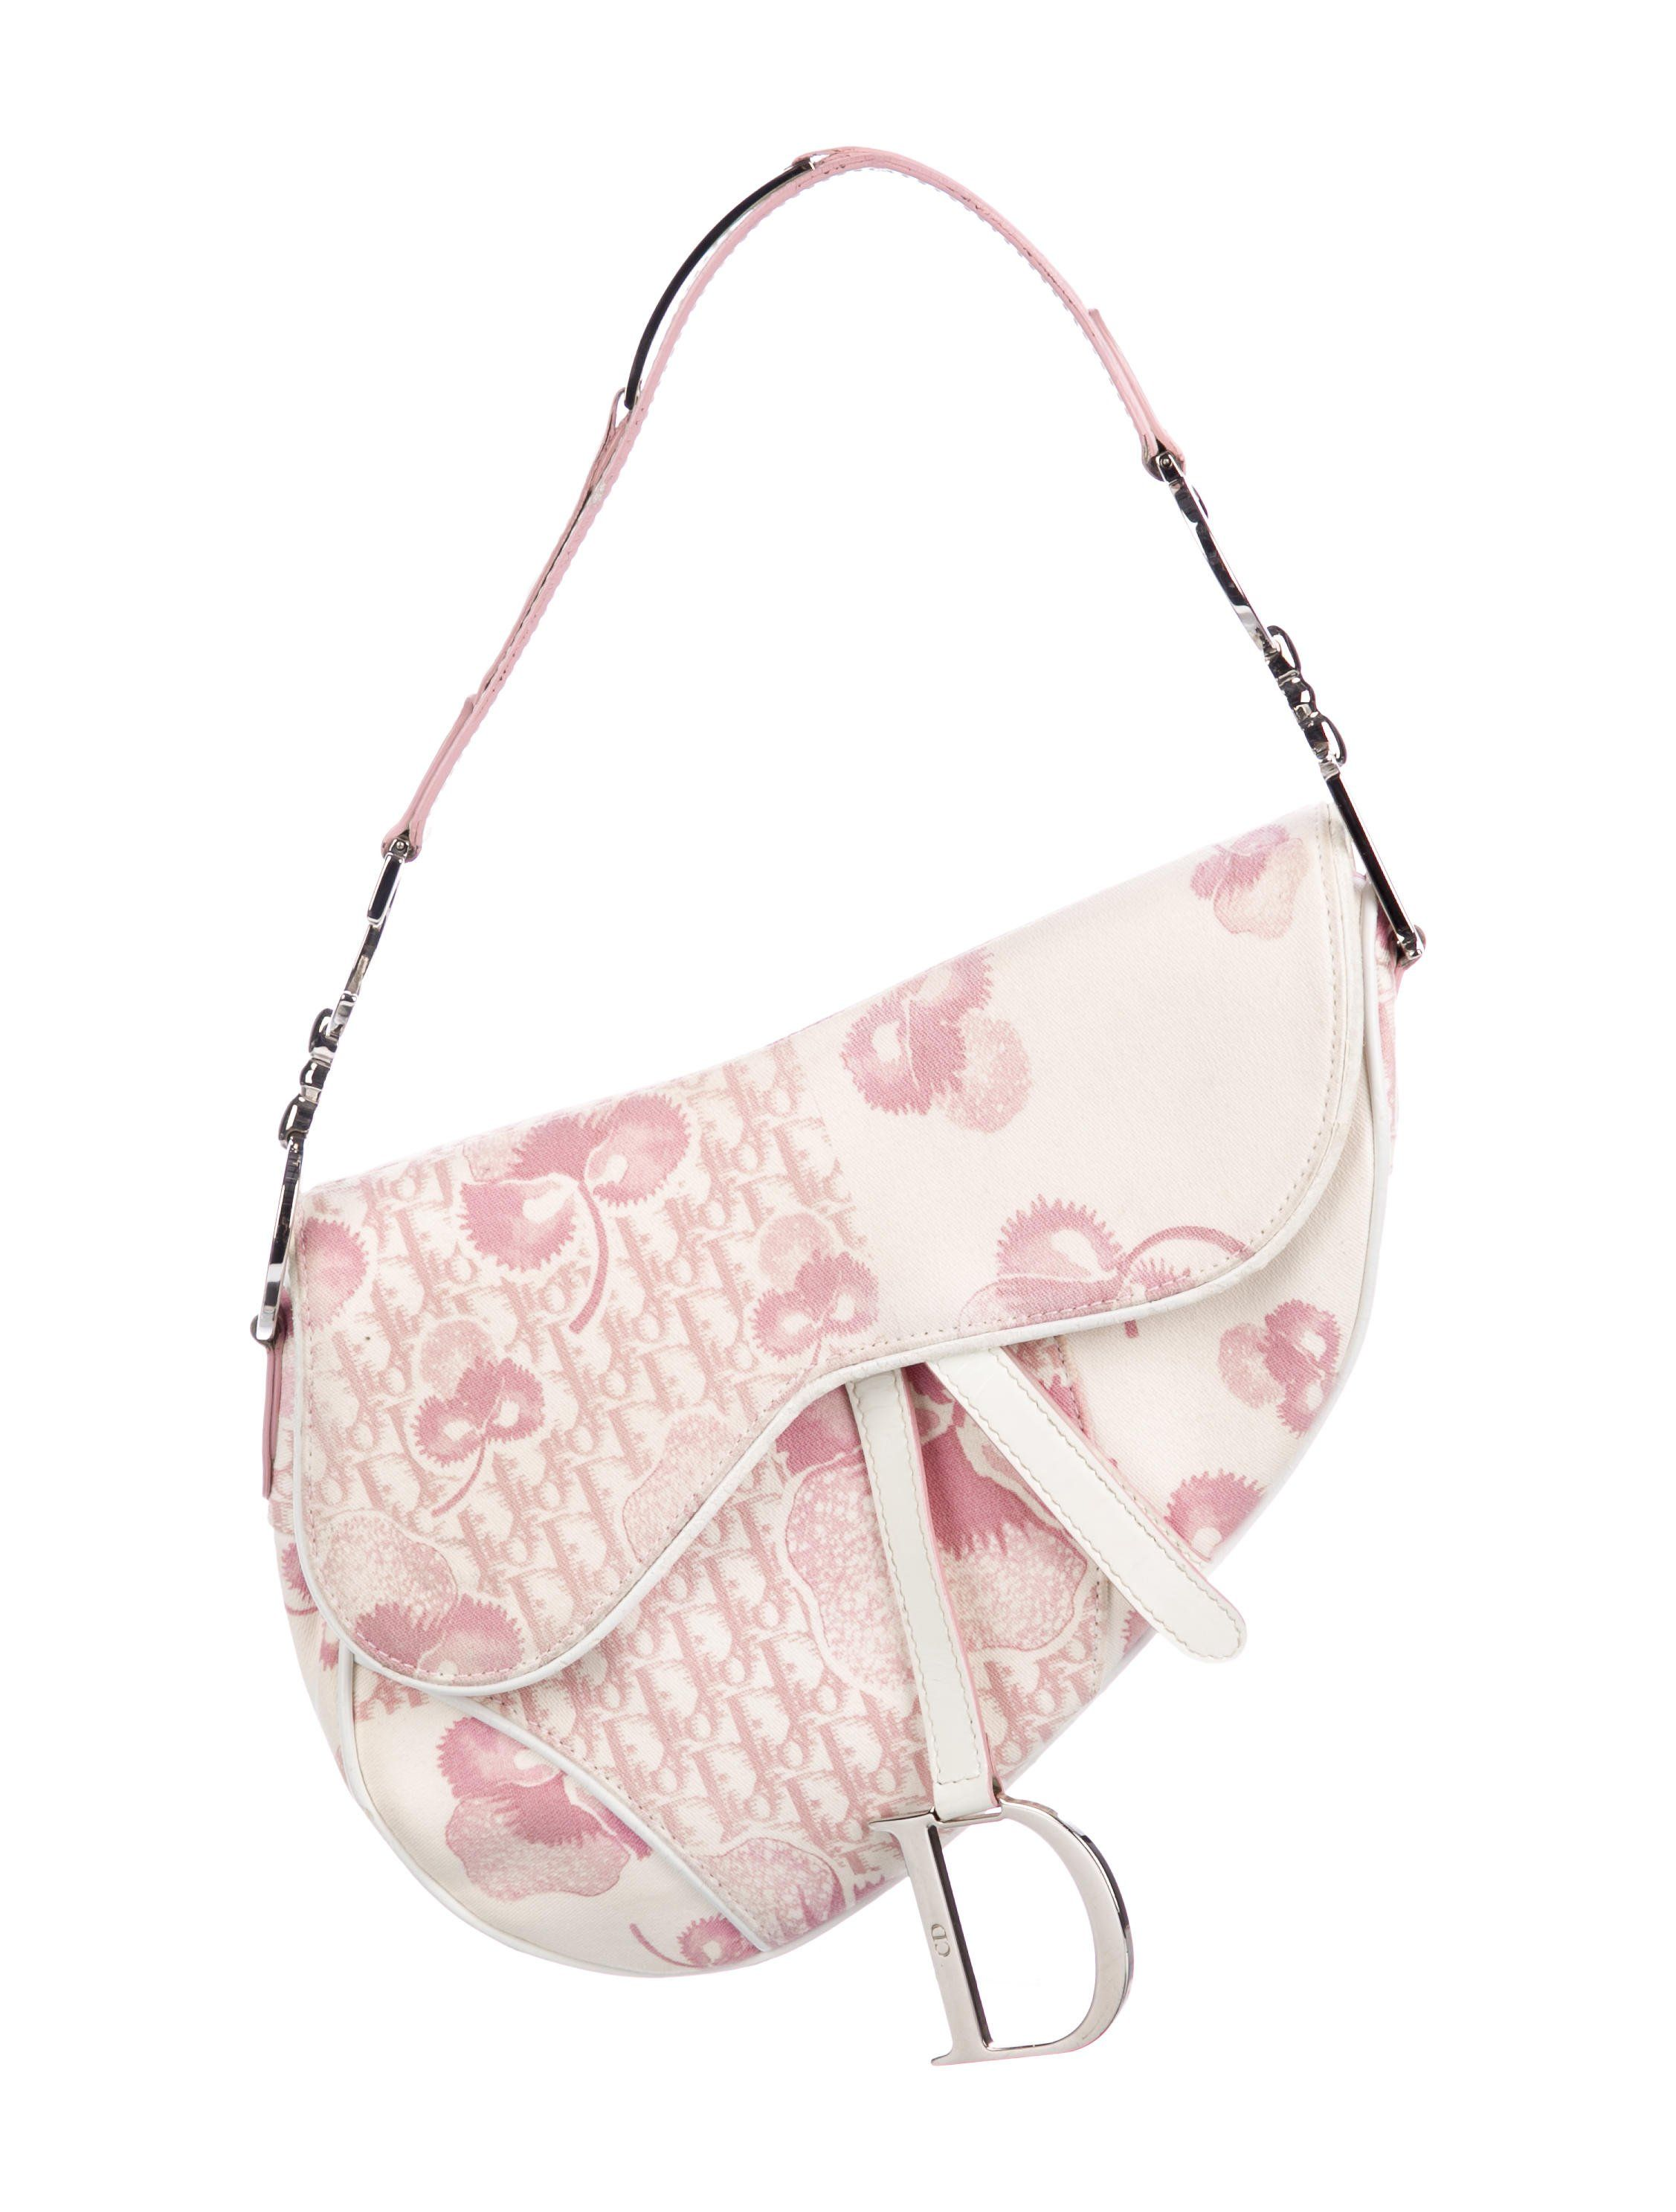 61bcb59dfe Pink and creme floral Diorissimo coated canvas Christian Dior Girly saddle  bag with silver-tone hardware, single flat shoulder strap featuring logo ...